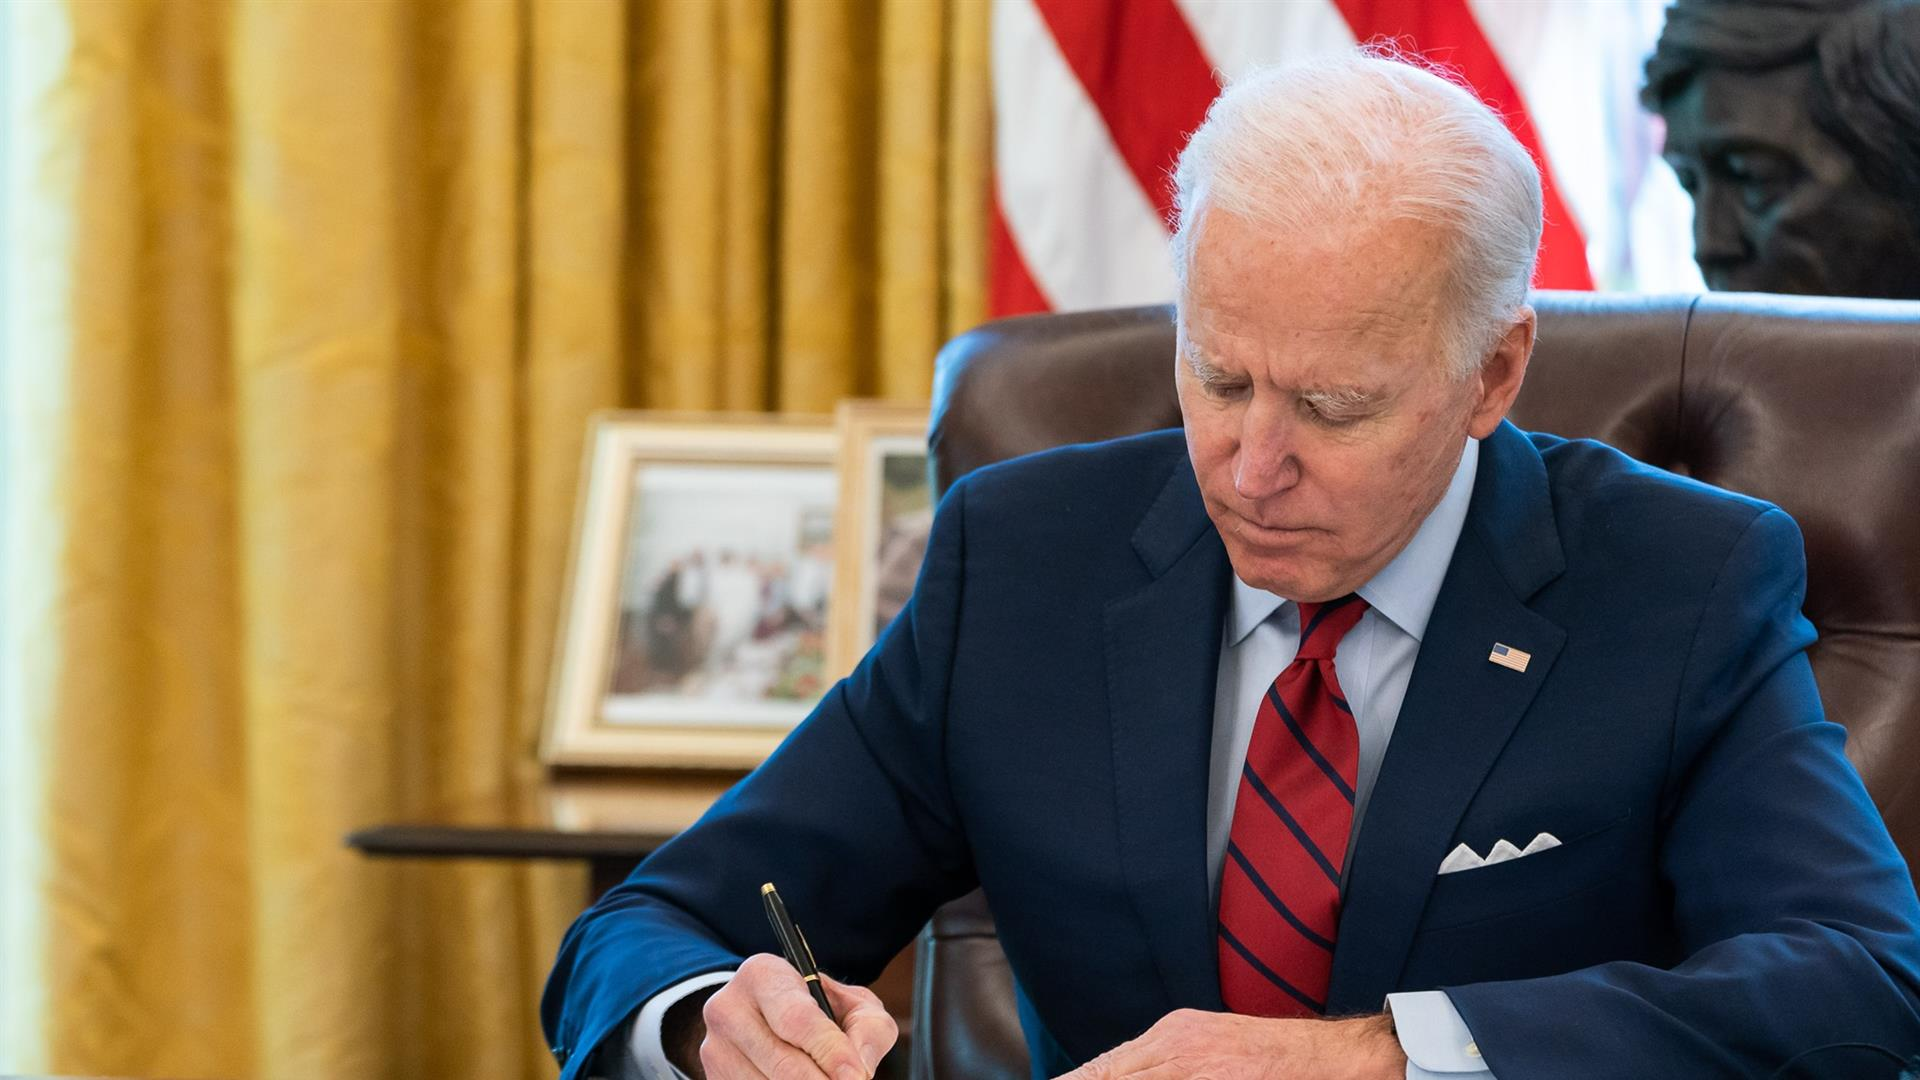 President Joe Biden Signs Executive Orders On Health Care Access And Affordability